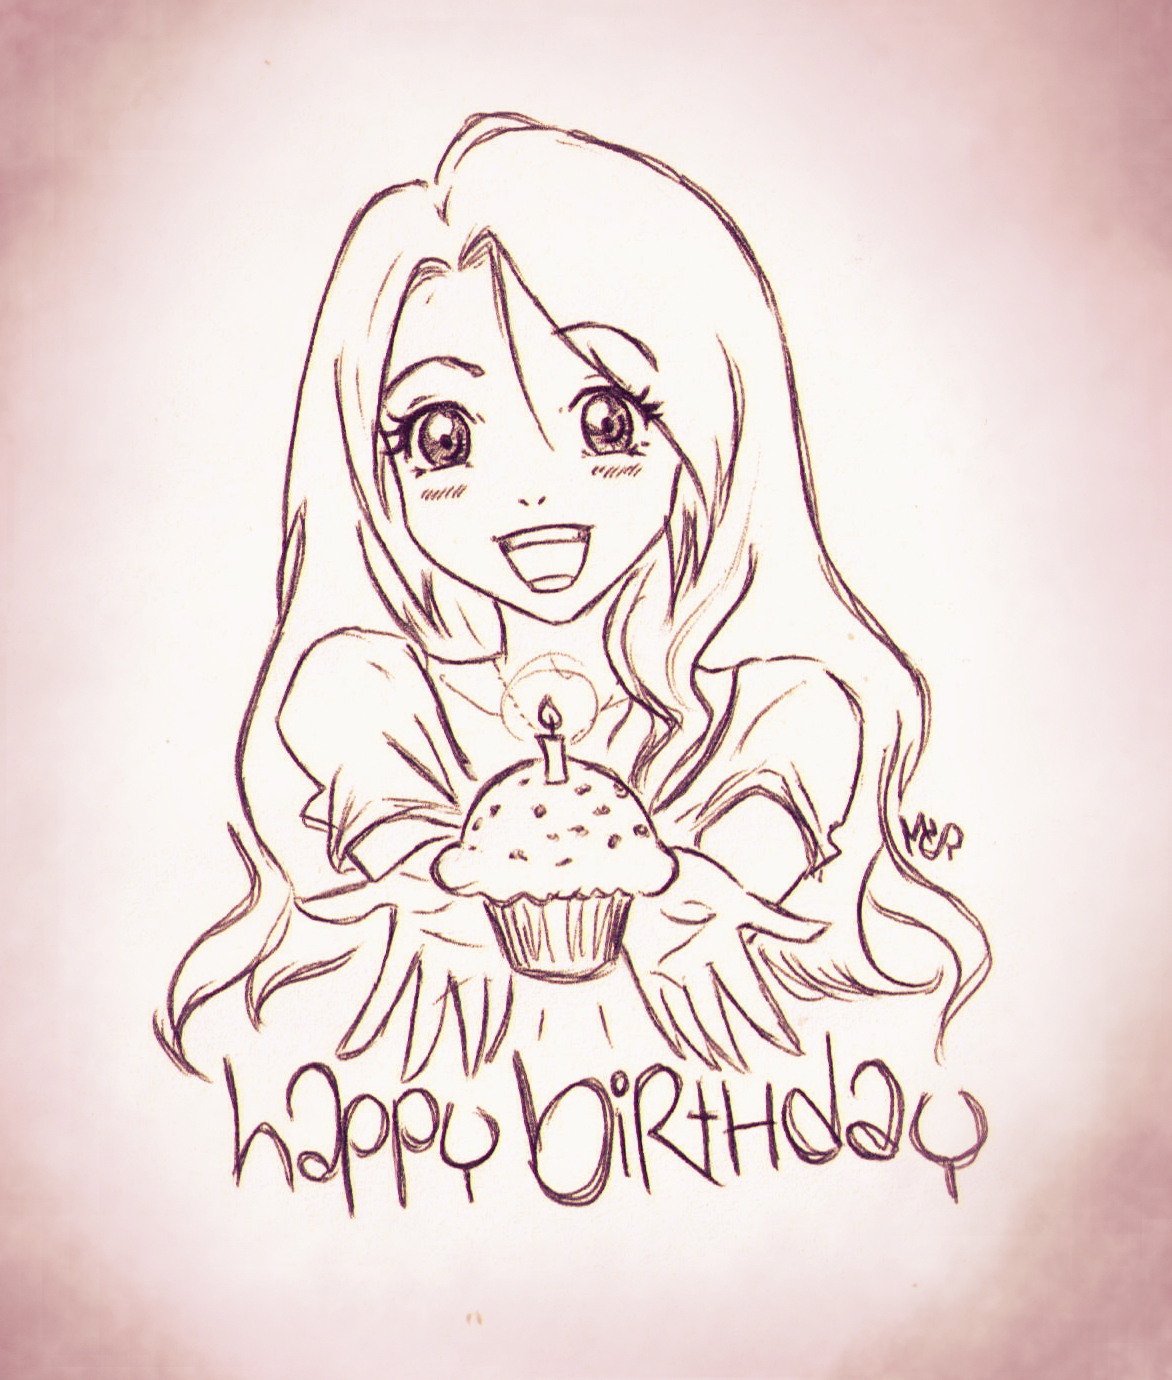 1172x1380 Pencil Drawing Of Love Of Birth Day Birthday Drawings For Friends